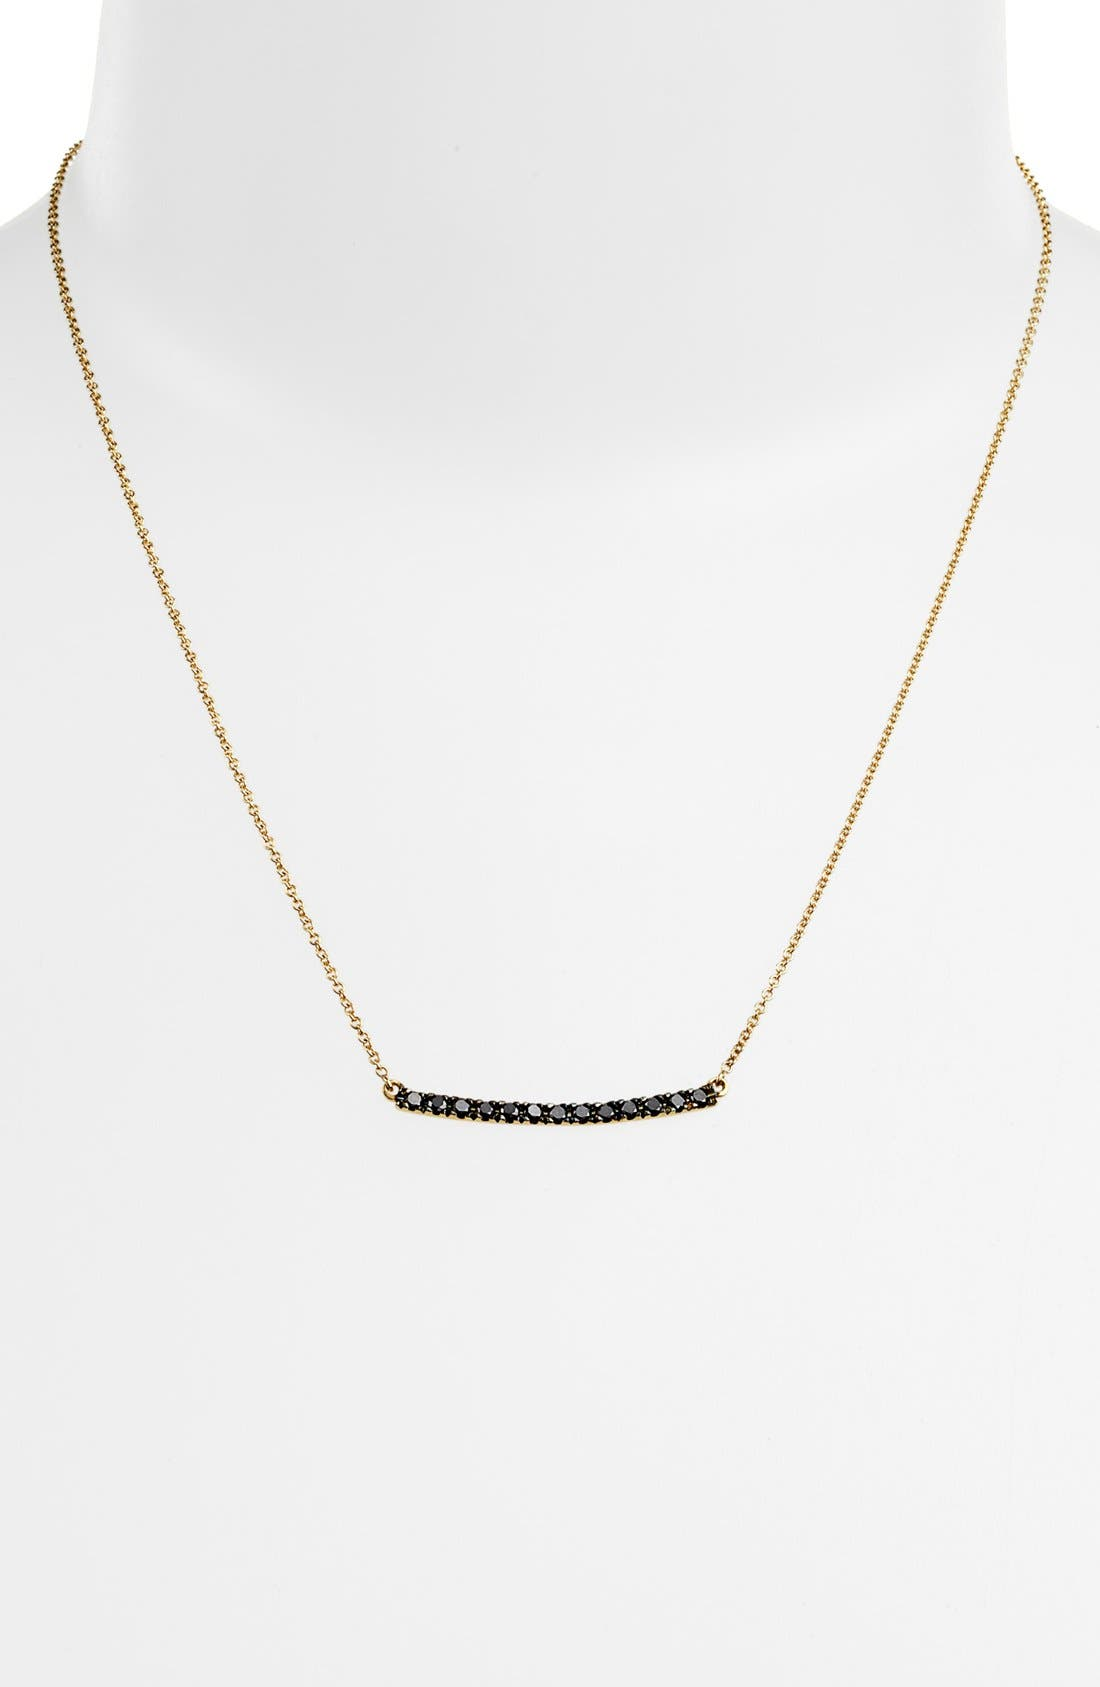 Alternate Image 2  - Bony Levy 'Stick' Pavé Black Diamond Bar Necklace (Nordstrom Exclusive)